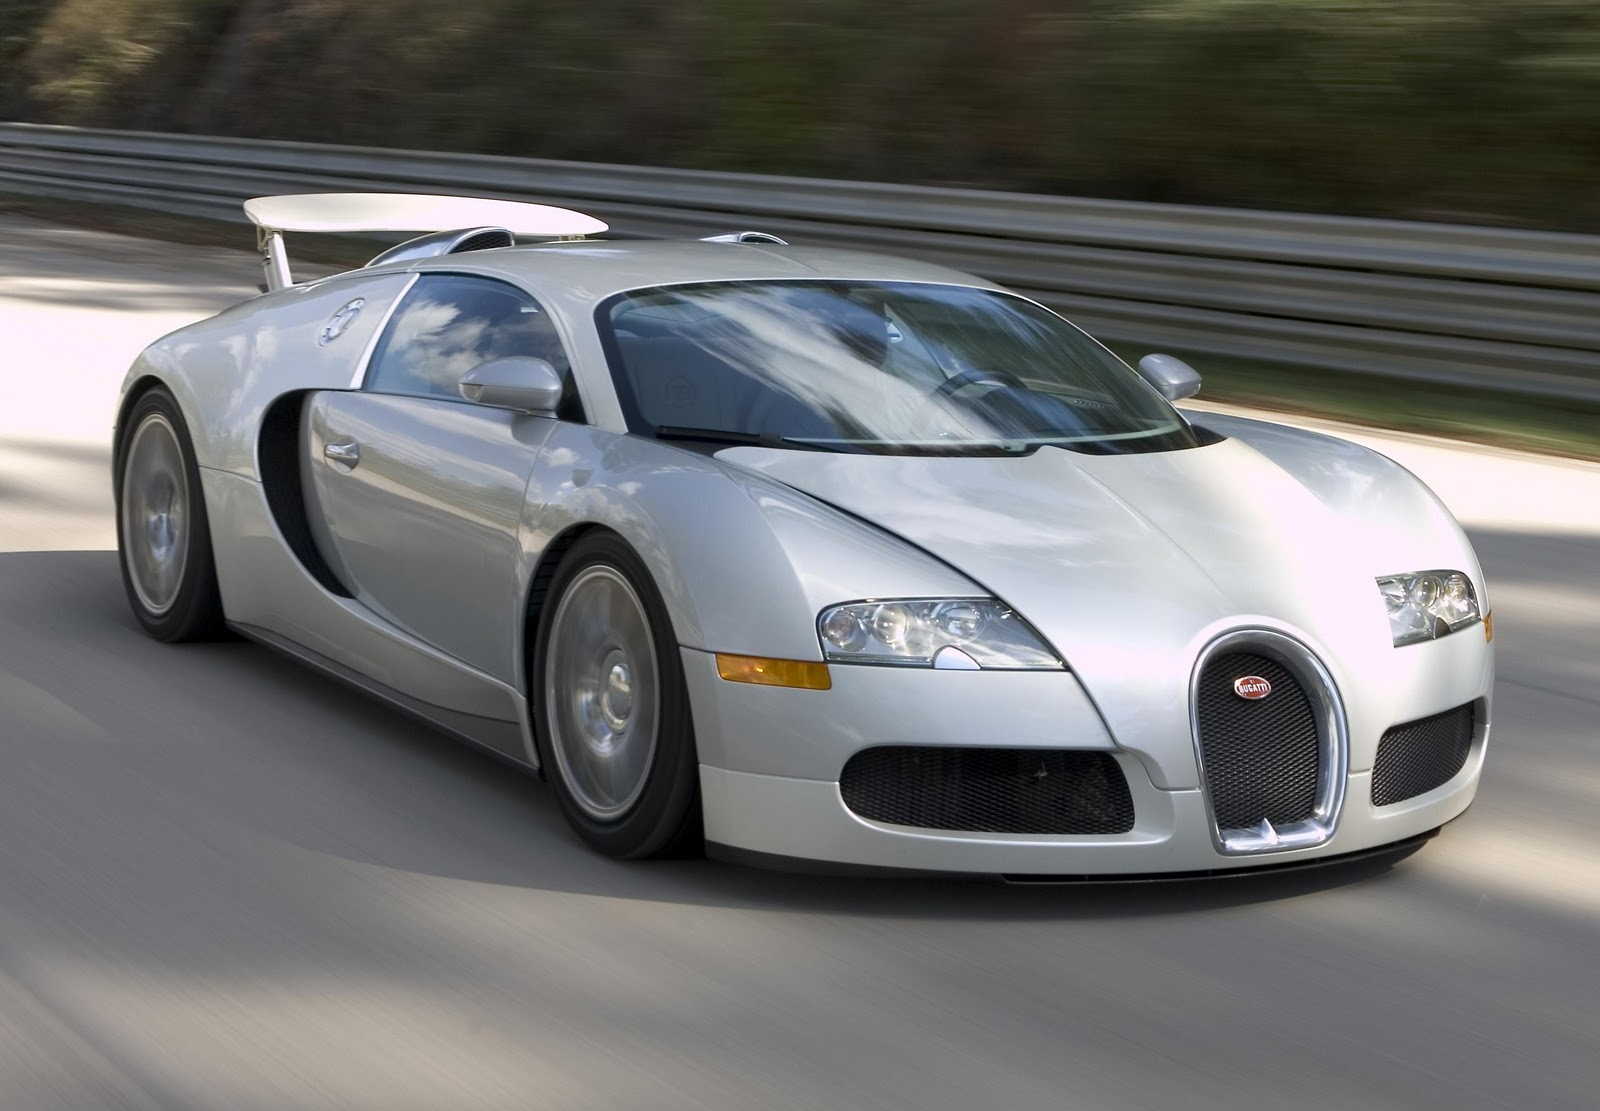 bugatti veyron noted as the most expensive and fastest car at this time world 39 s most expensive. Black Bedroom Furniture Sets. Home Design Ideas